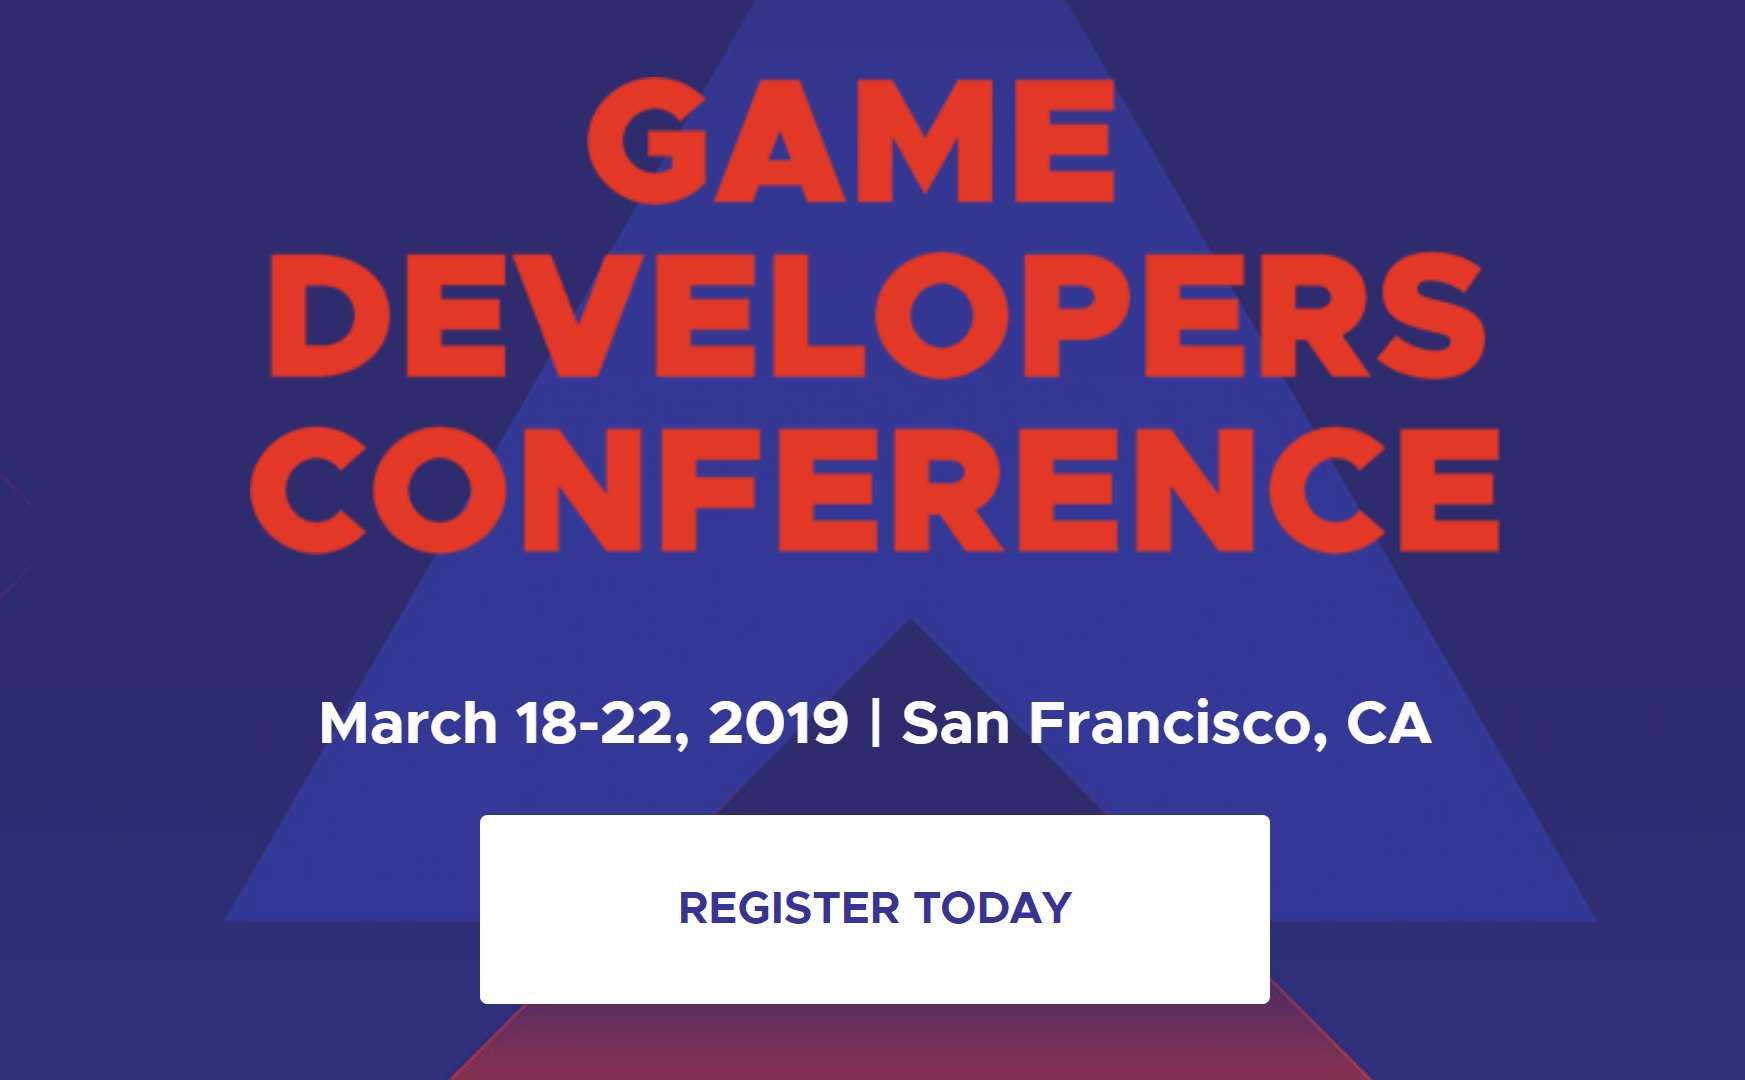 Top Mobile Games Conferences To Go To in 2019 - Business of Apps